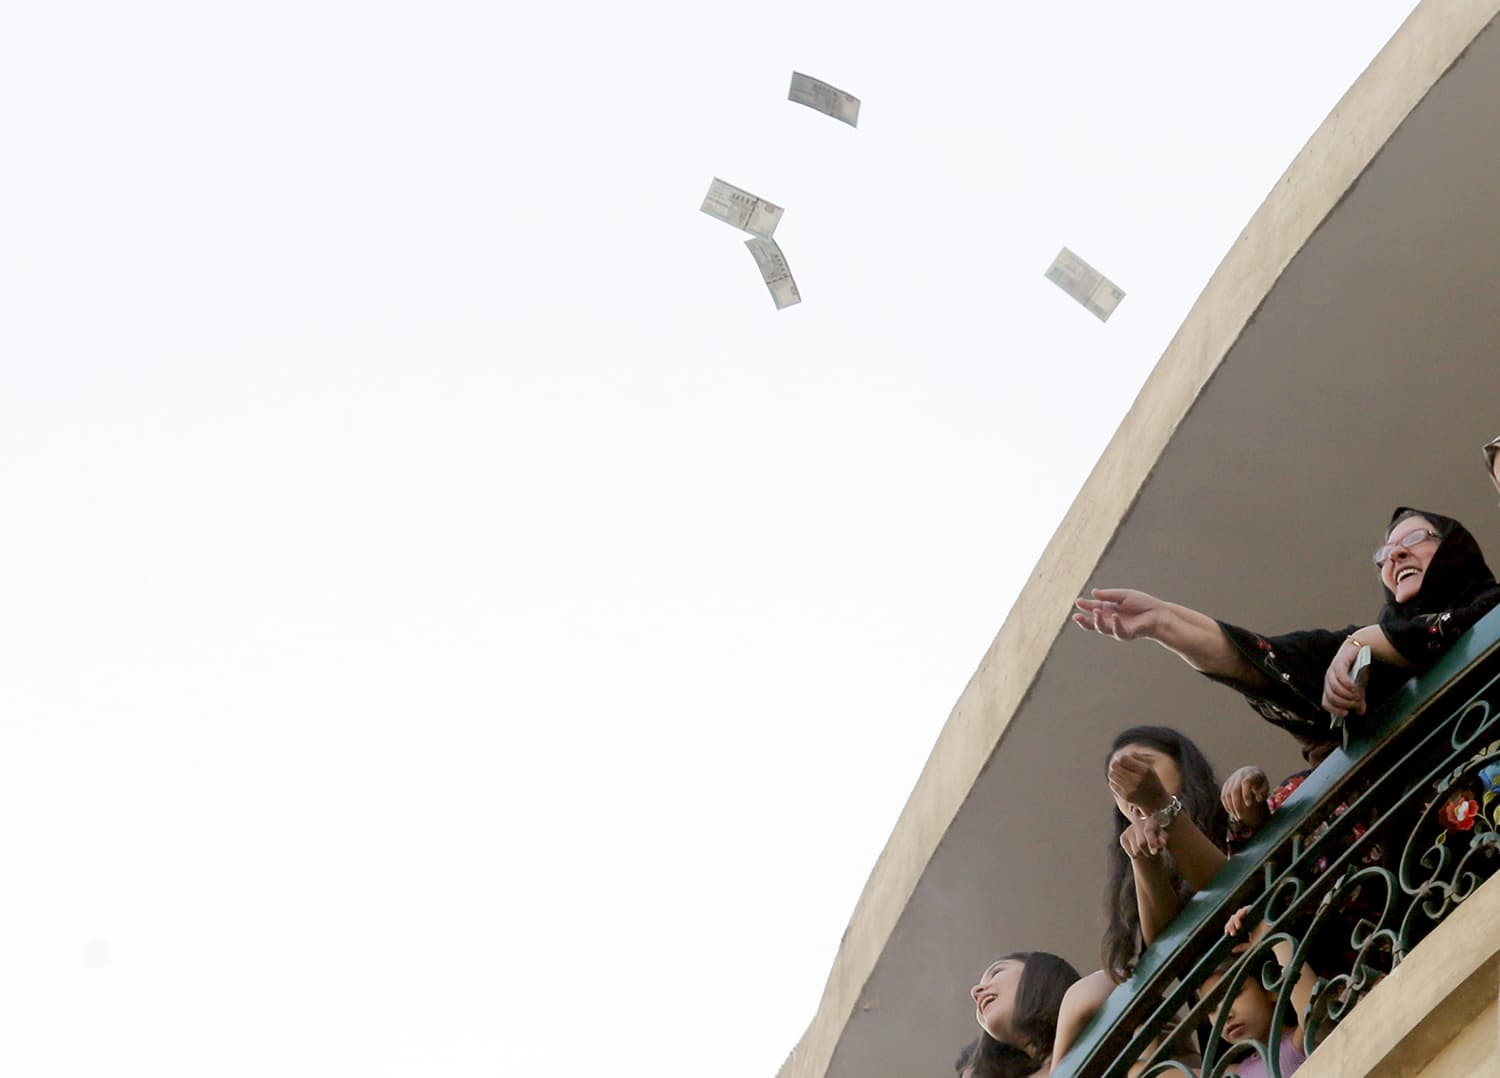 People throw money from a balcony as gifts to passing Muslims celebrating Eidul Fitr outside al-Seddik mosque in Cairo, Egypt. — AP